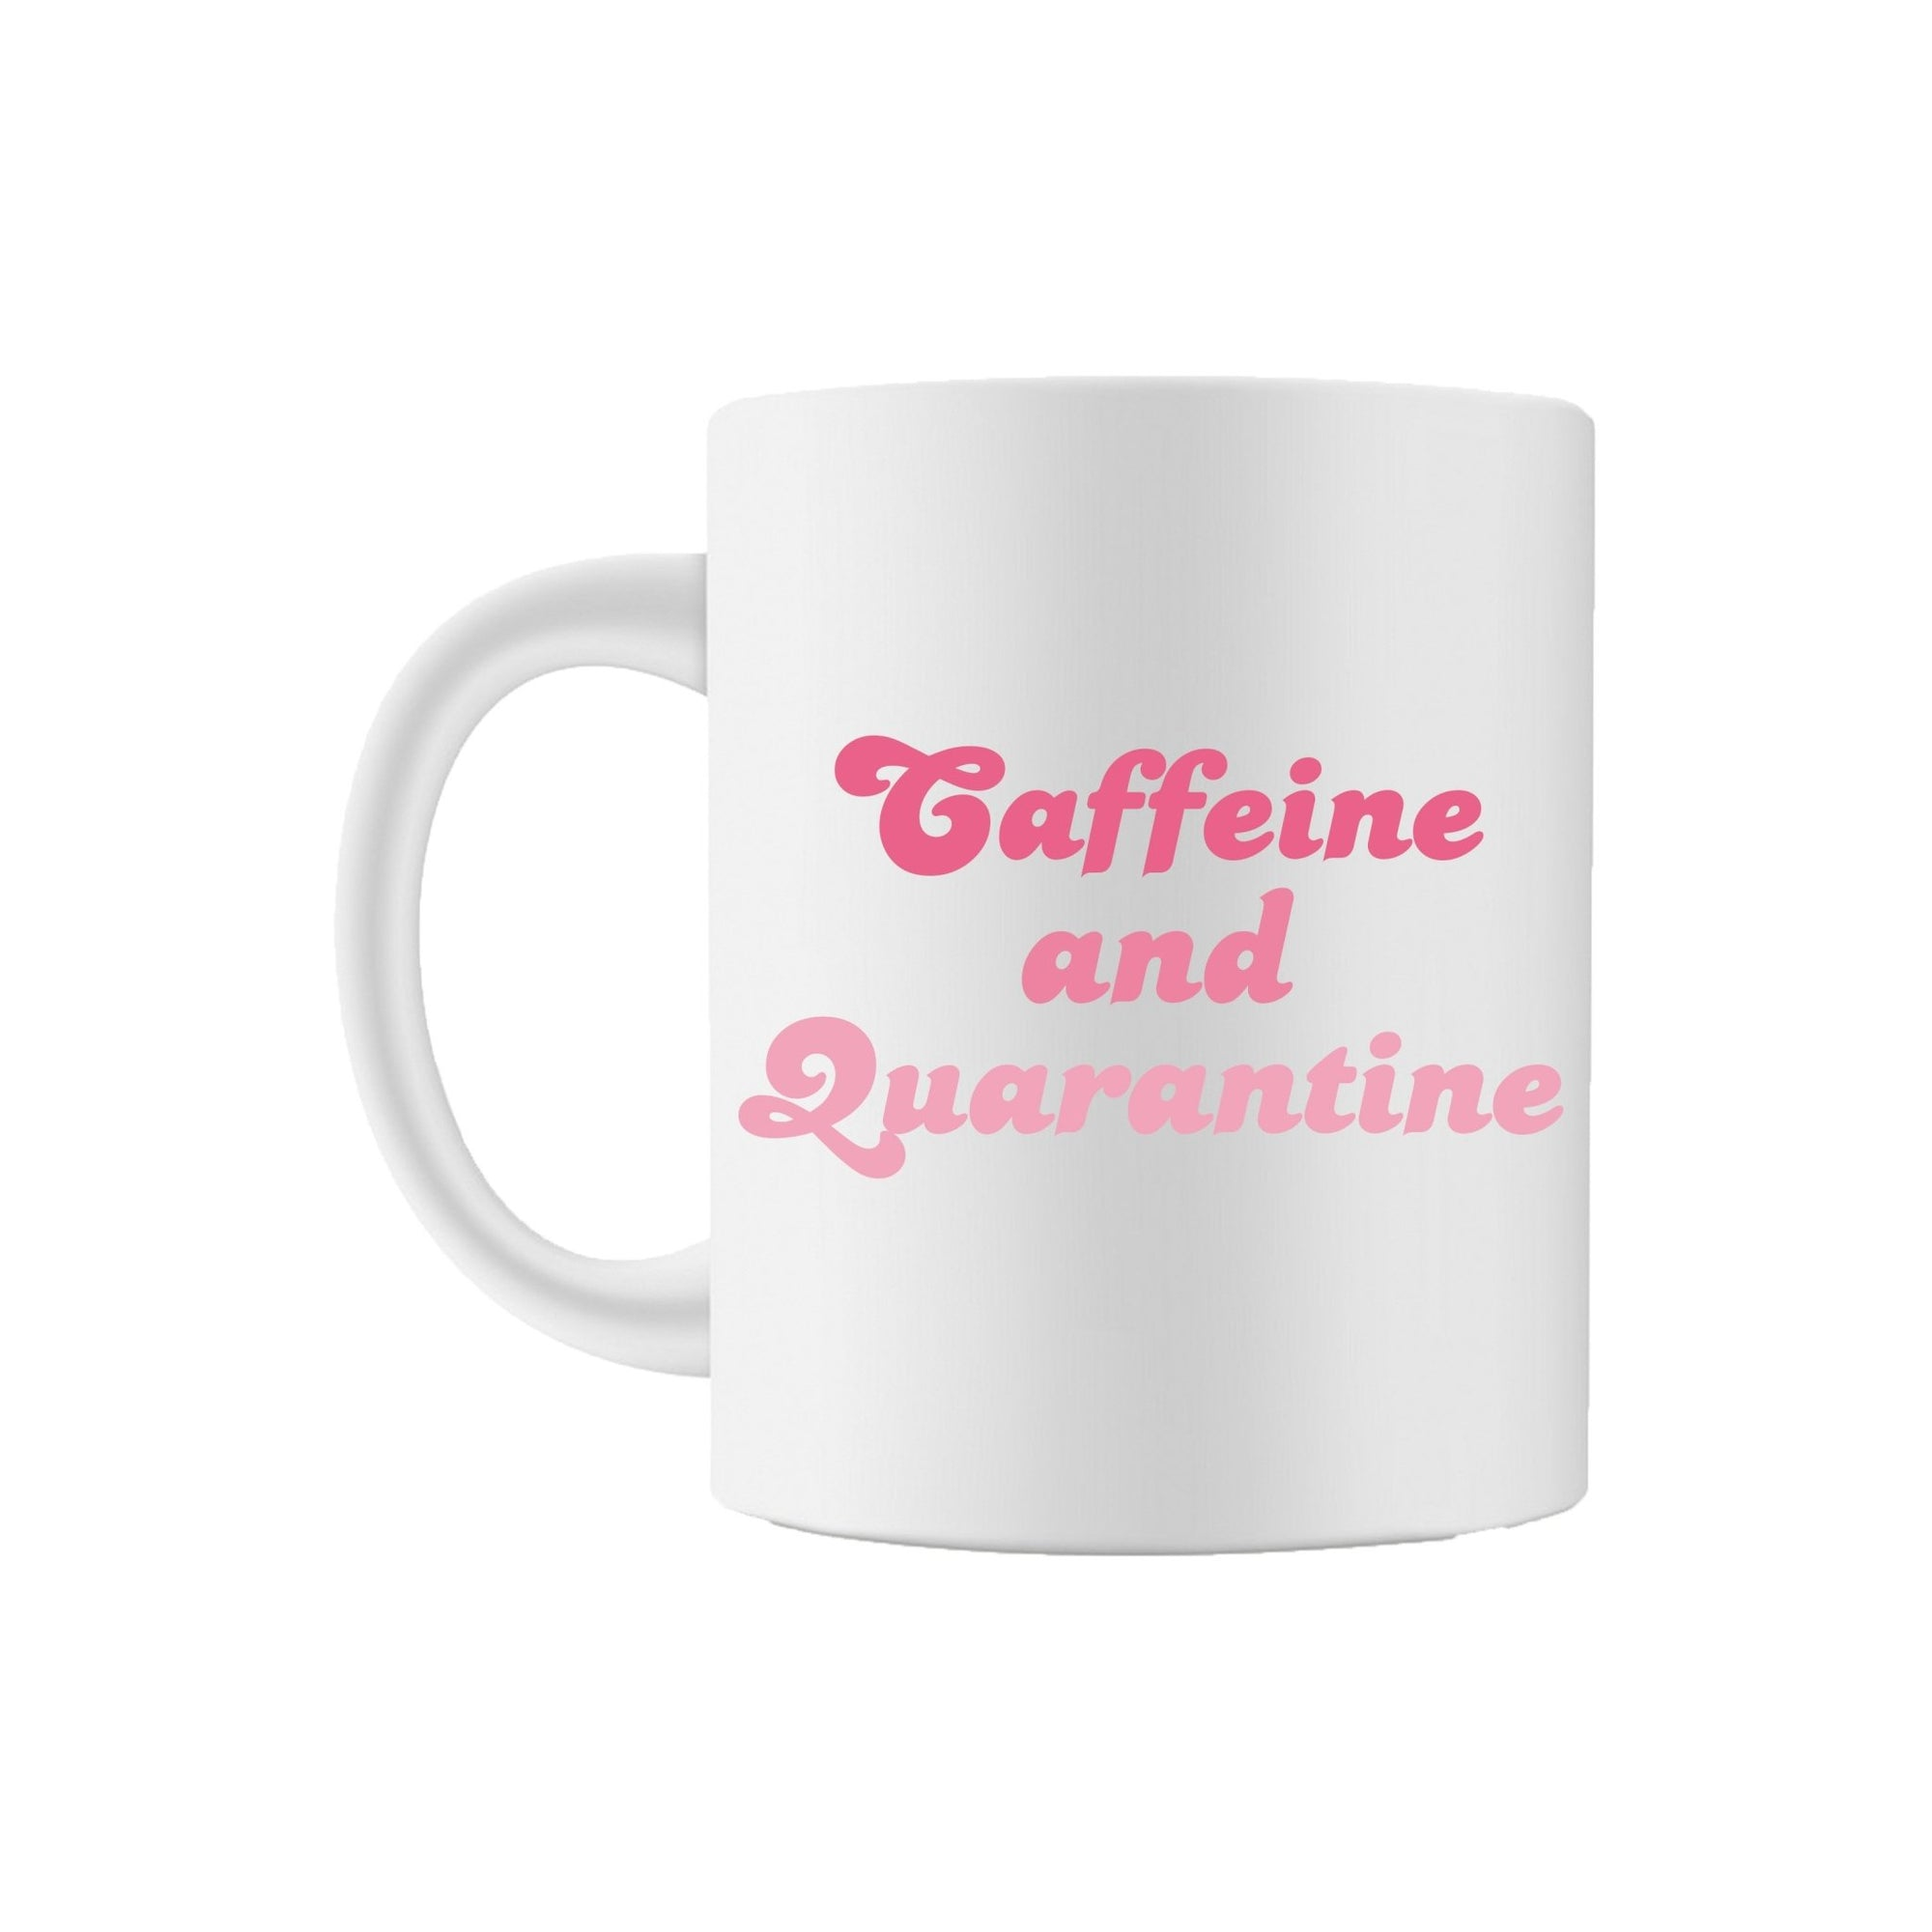 Caffeine and Quarantine Coffee Mug - Sprinkled With Pink #bachelorette #custom #gifts